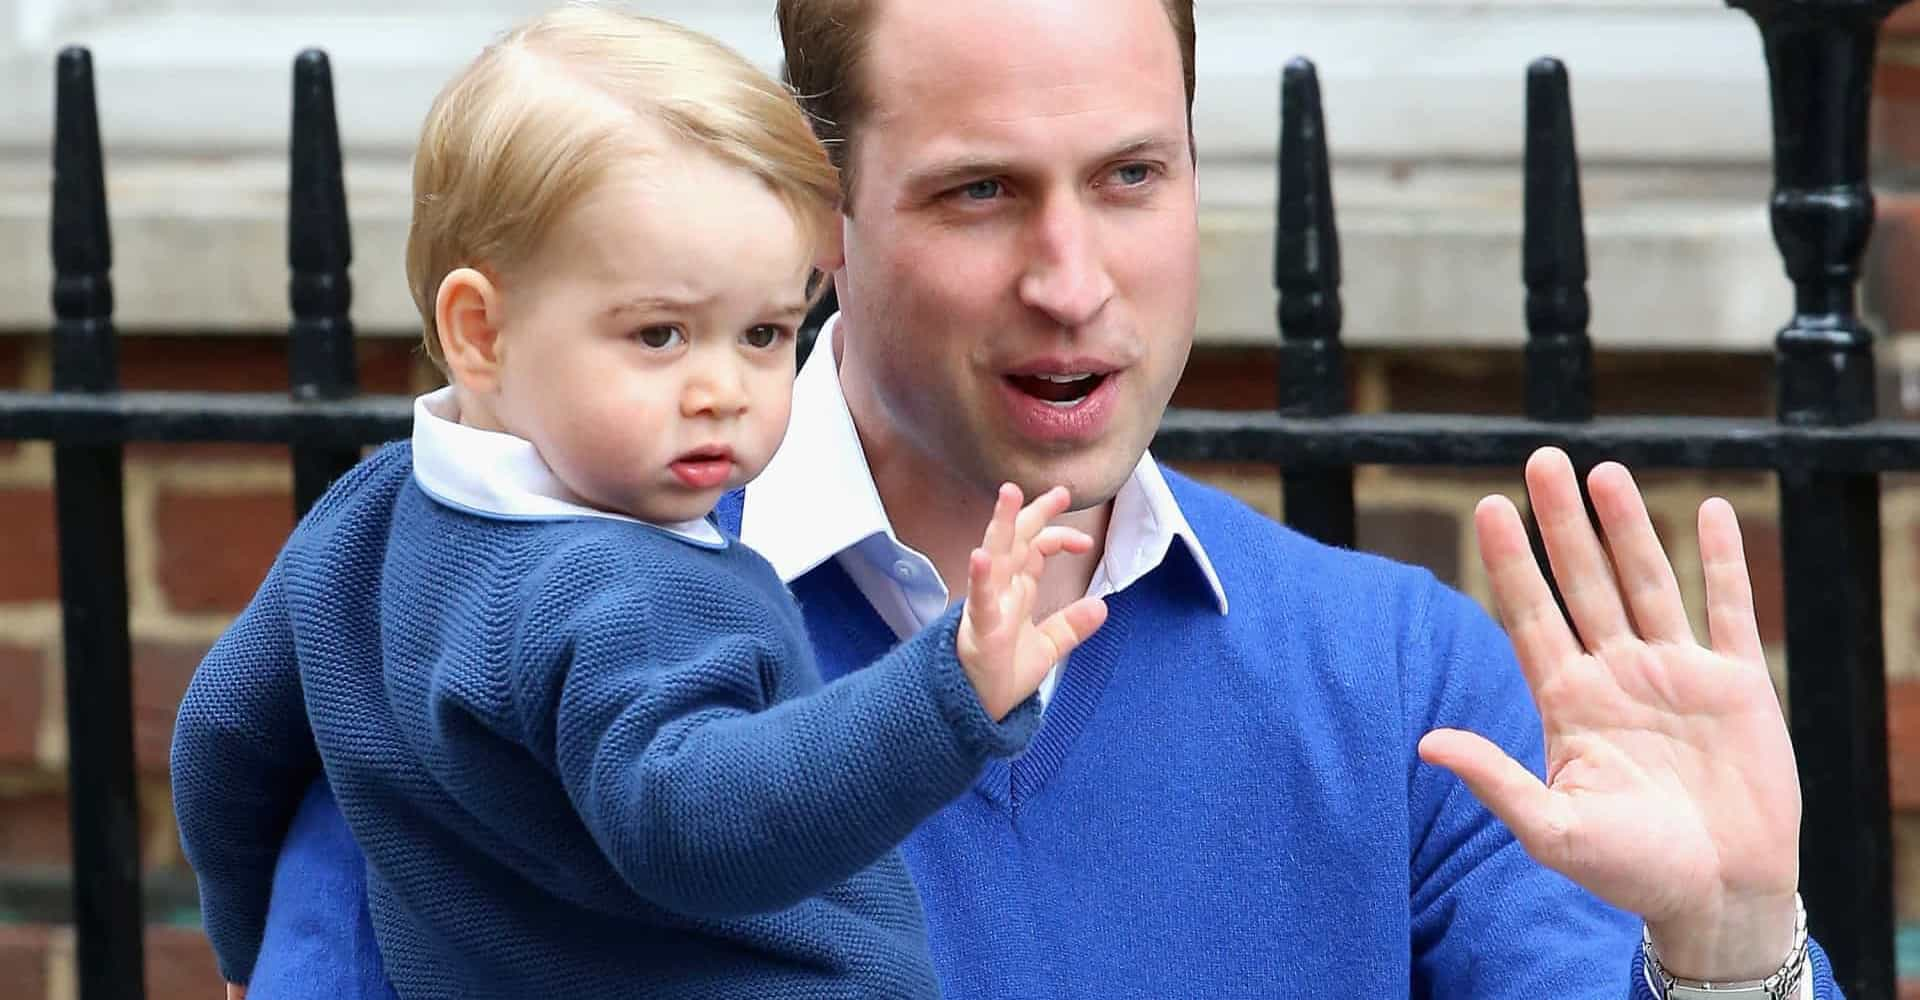 Prince William vows support if his children come out as LGBT